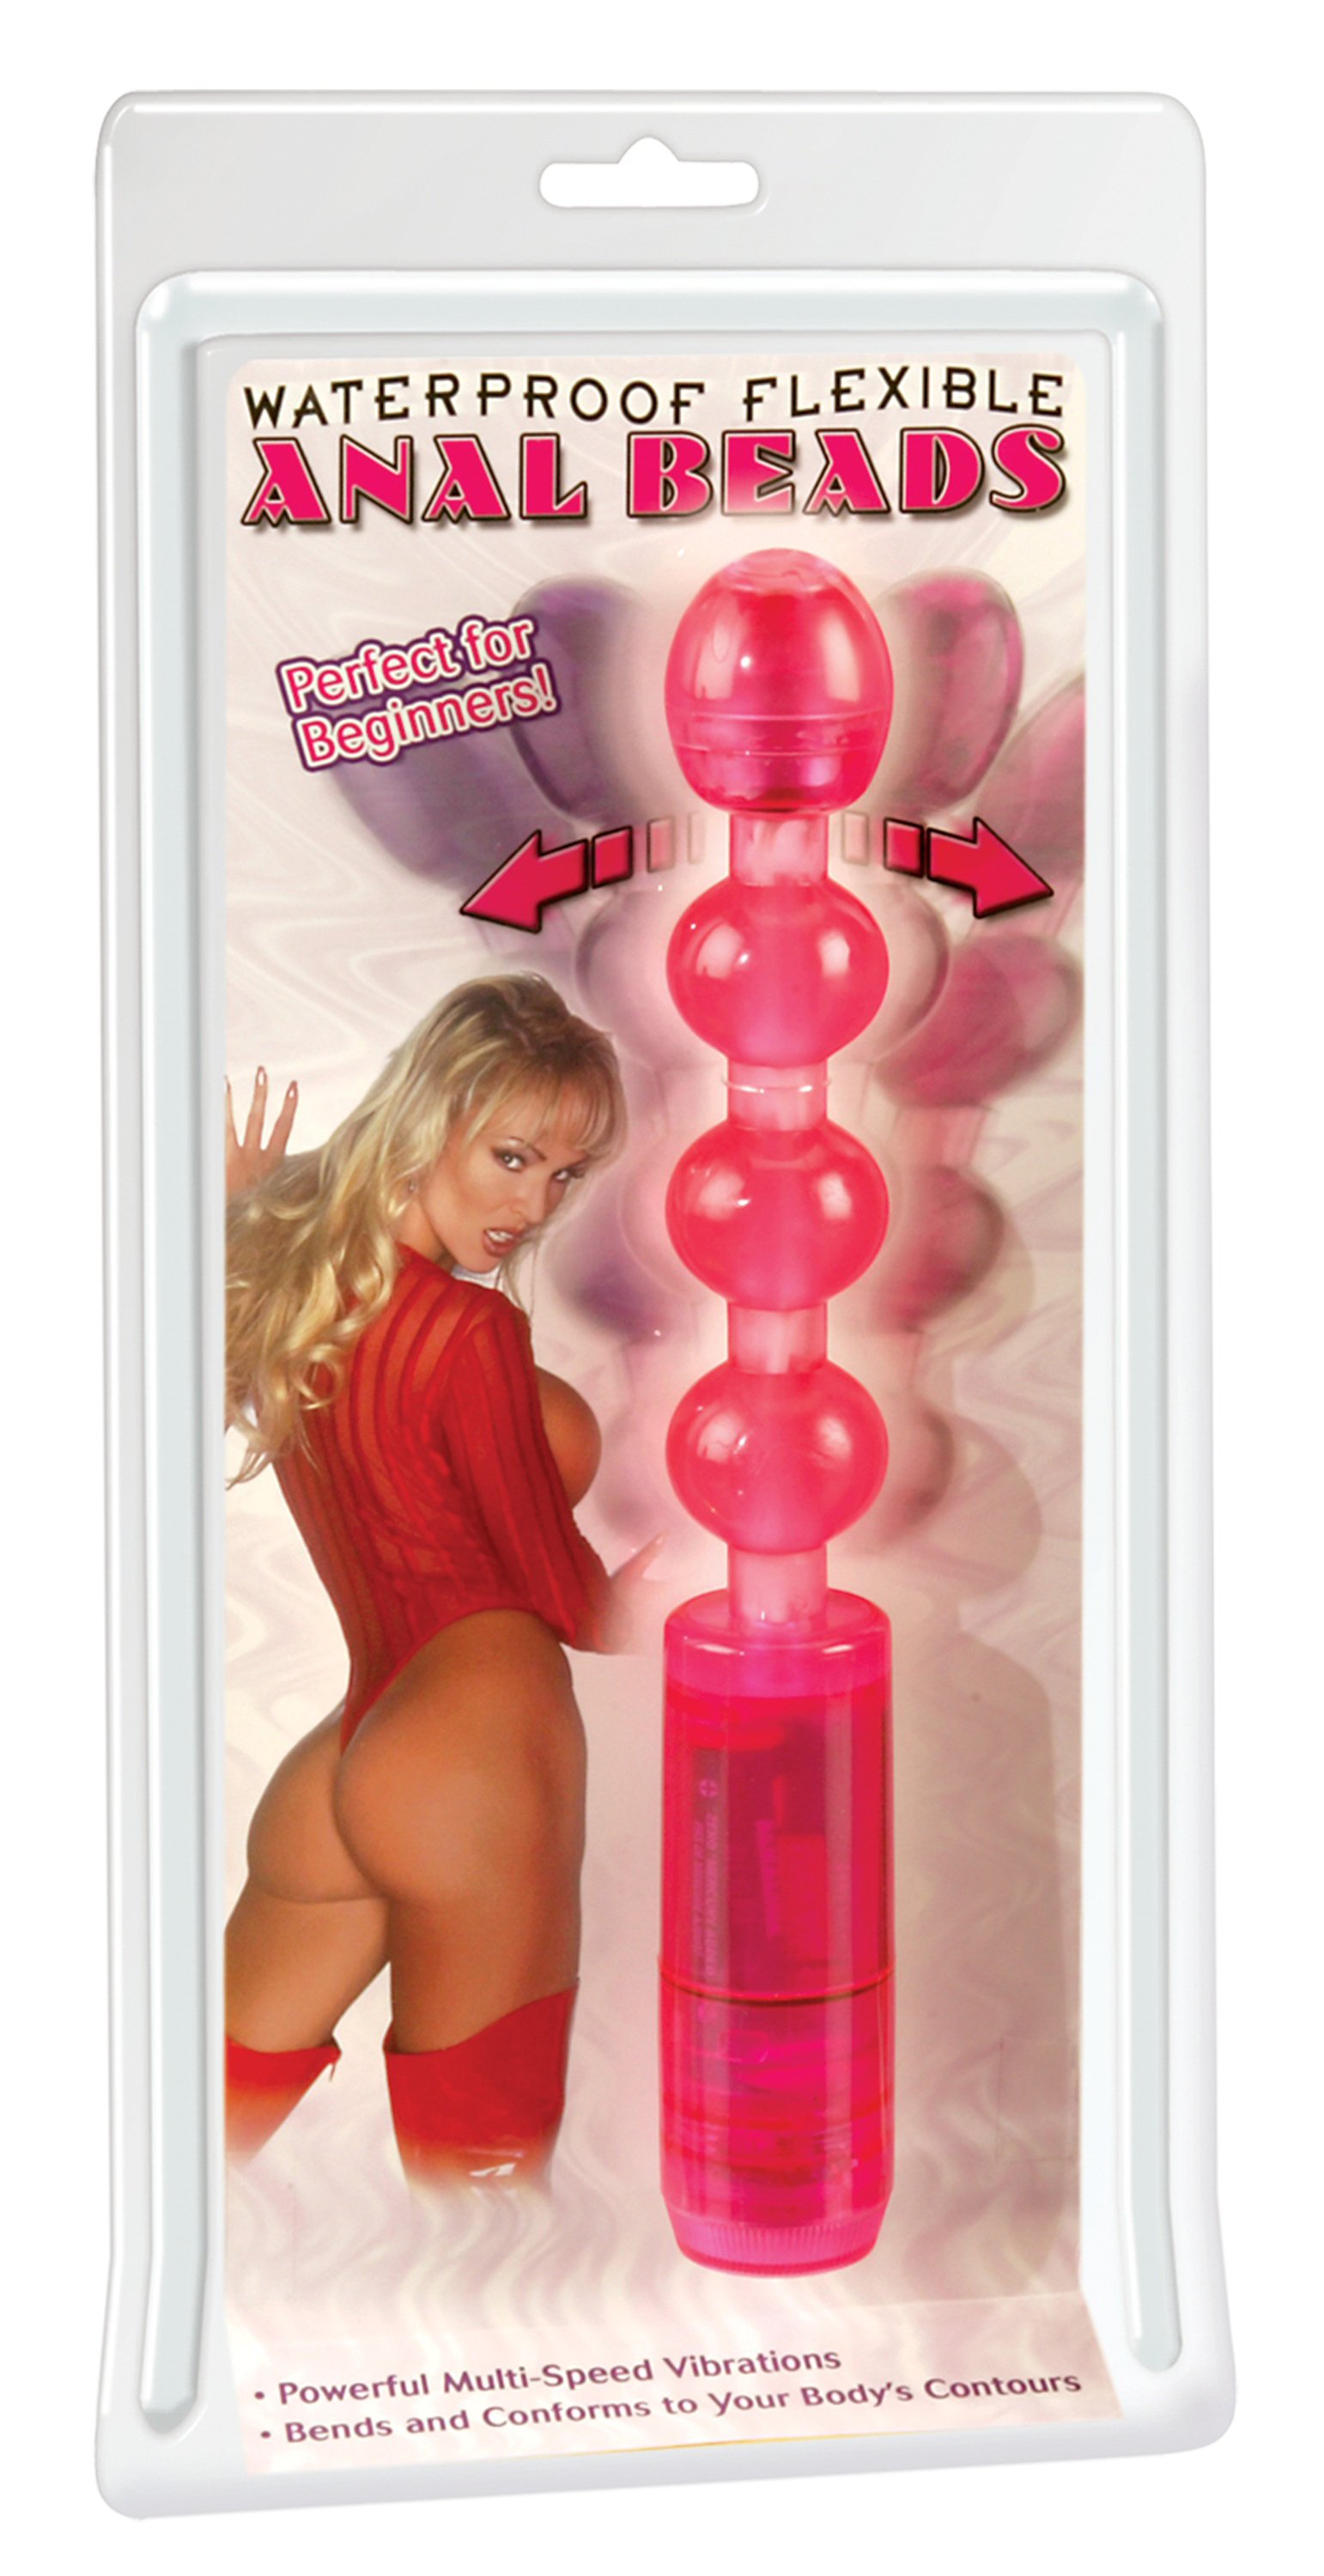 WATERPROOF FLEXIBLE ANAL BEADS PINK